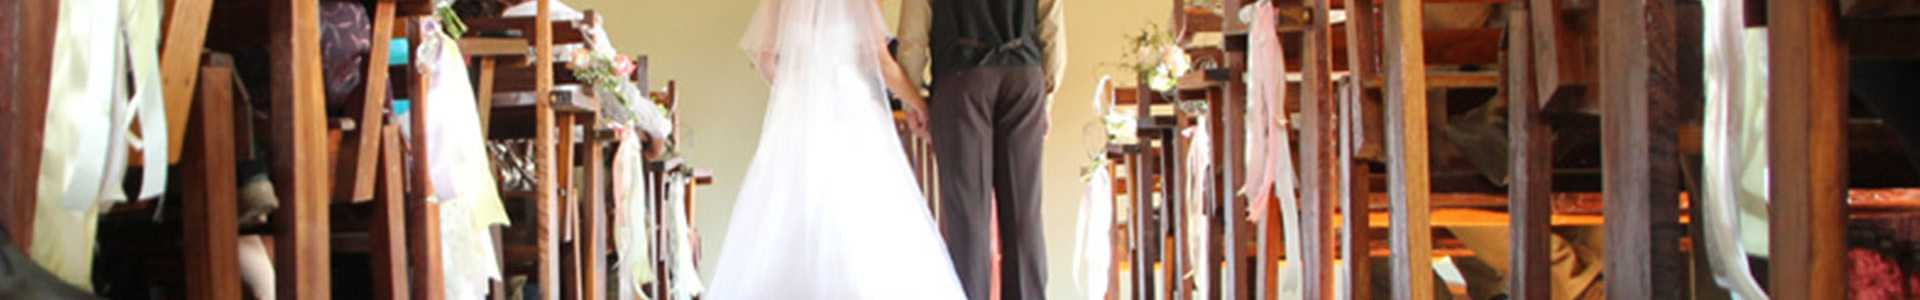 header-wedding2.jpg